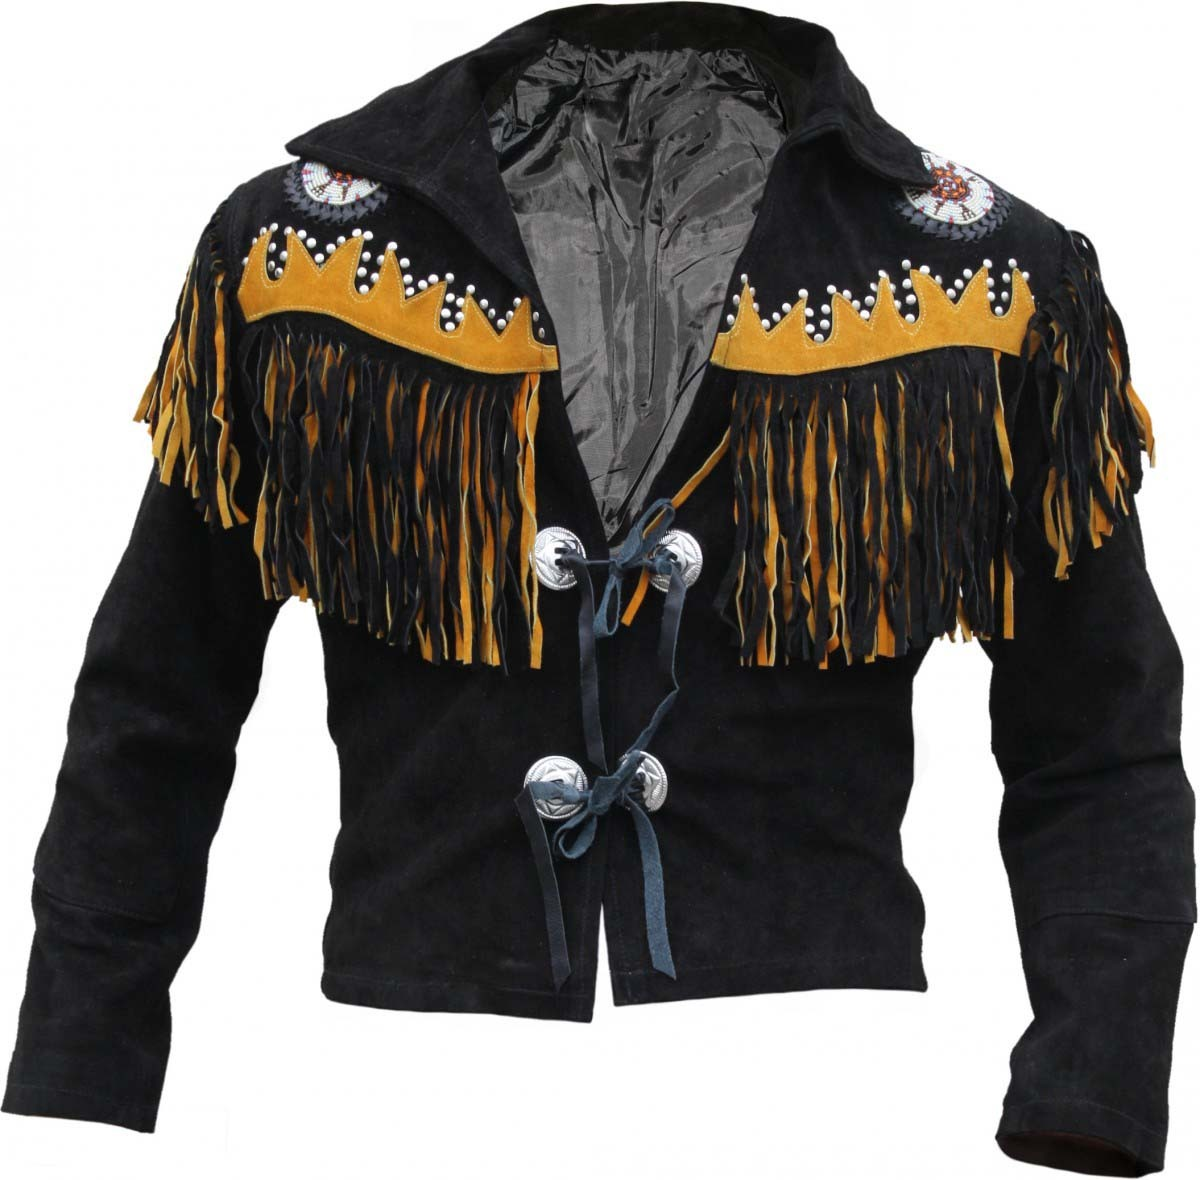 Indian leather jackets